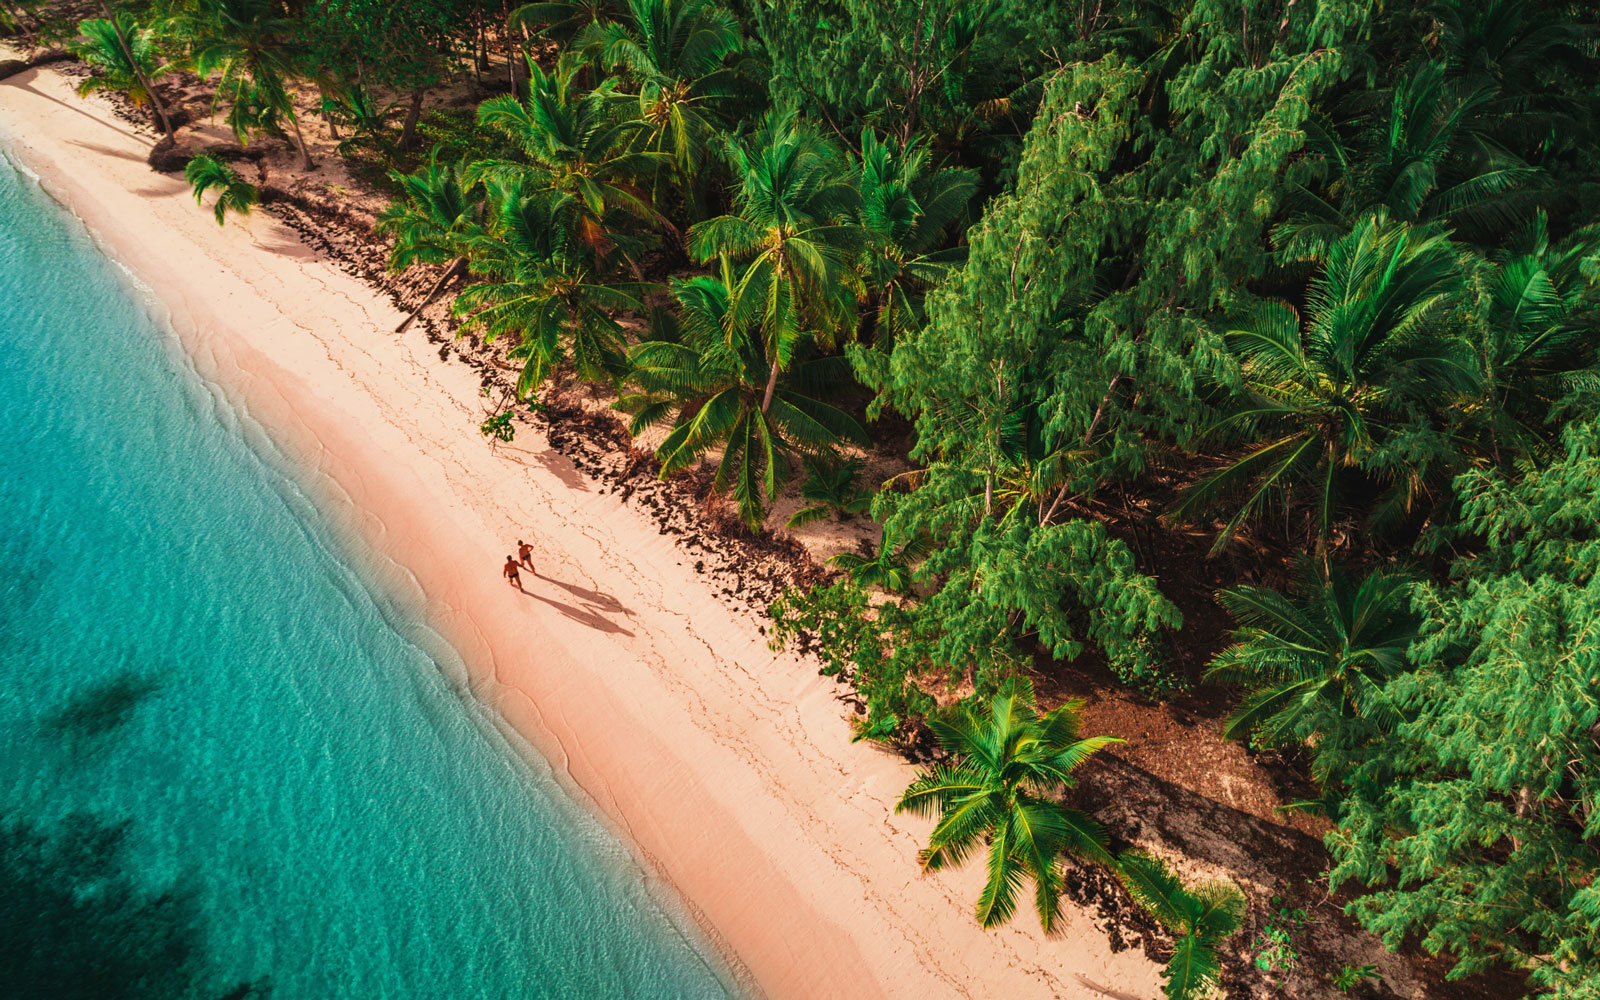 831c3f39fe39 13 Affordable Family Vacations to Take This Summer | Travel + Leisure